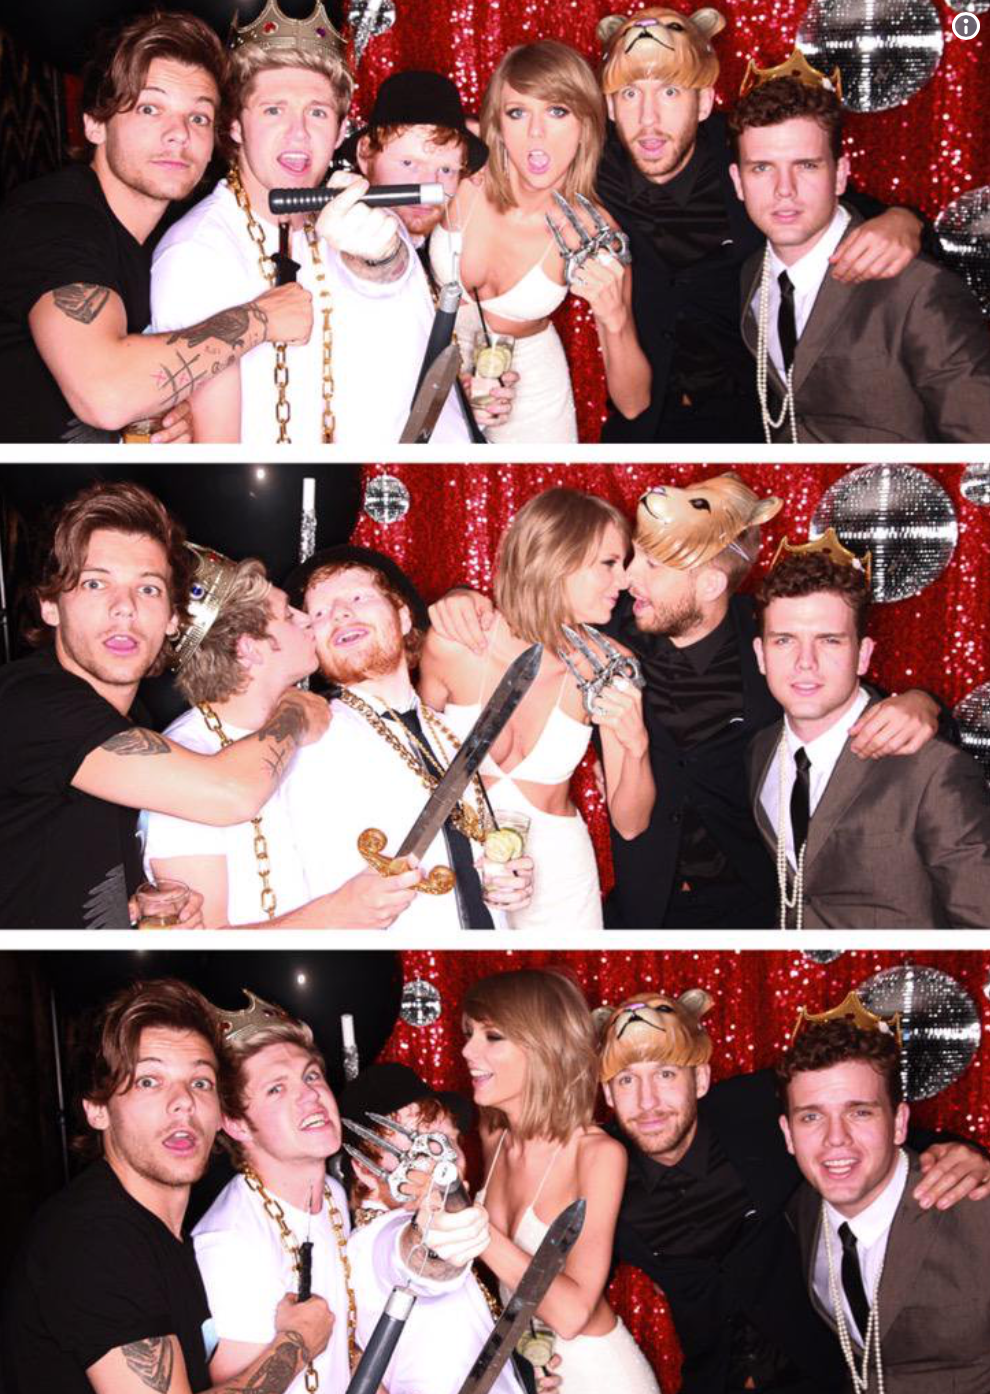 Taylor Swift photo booth